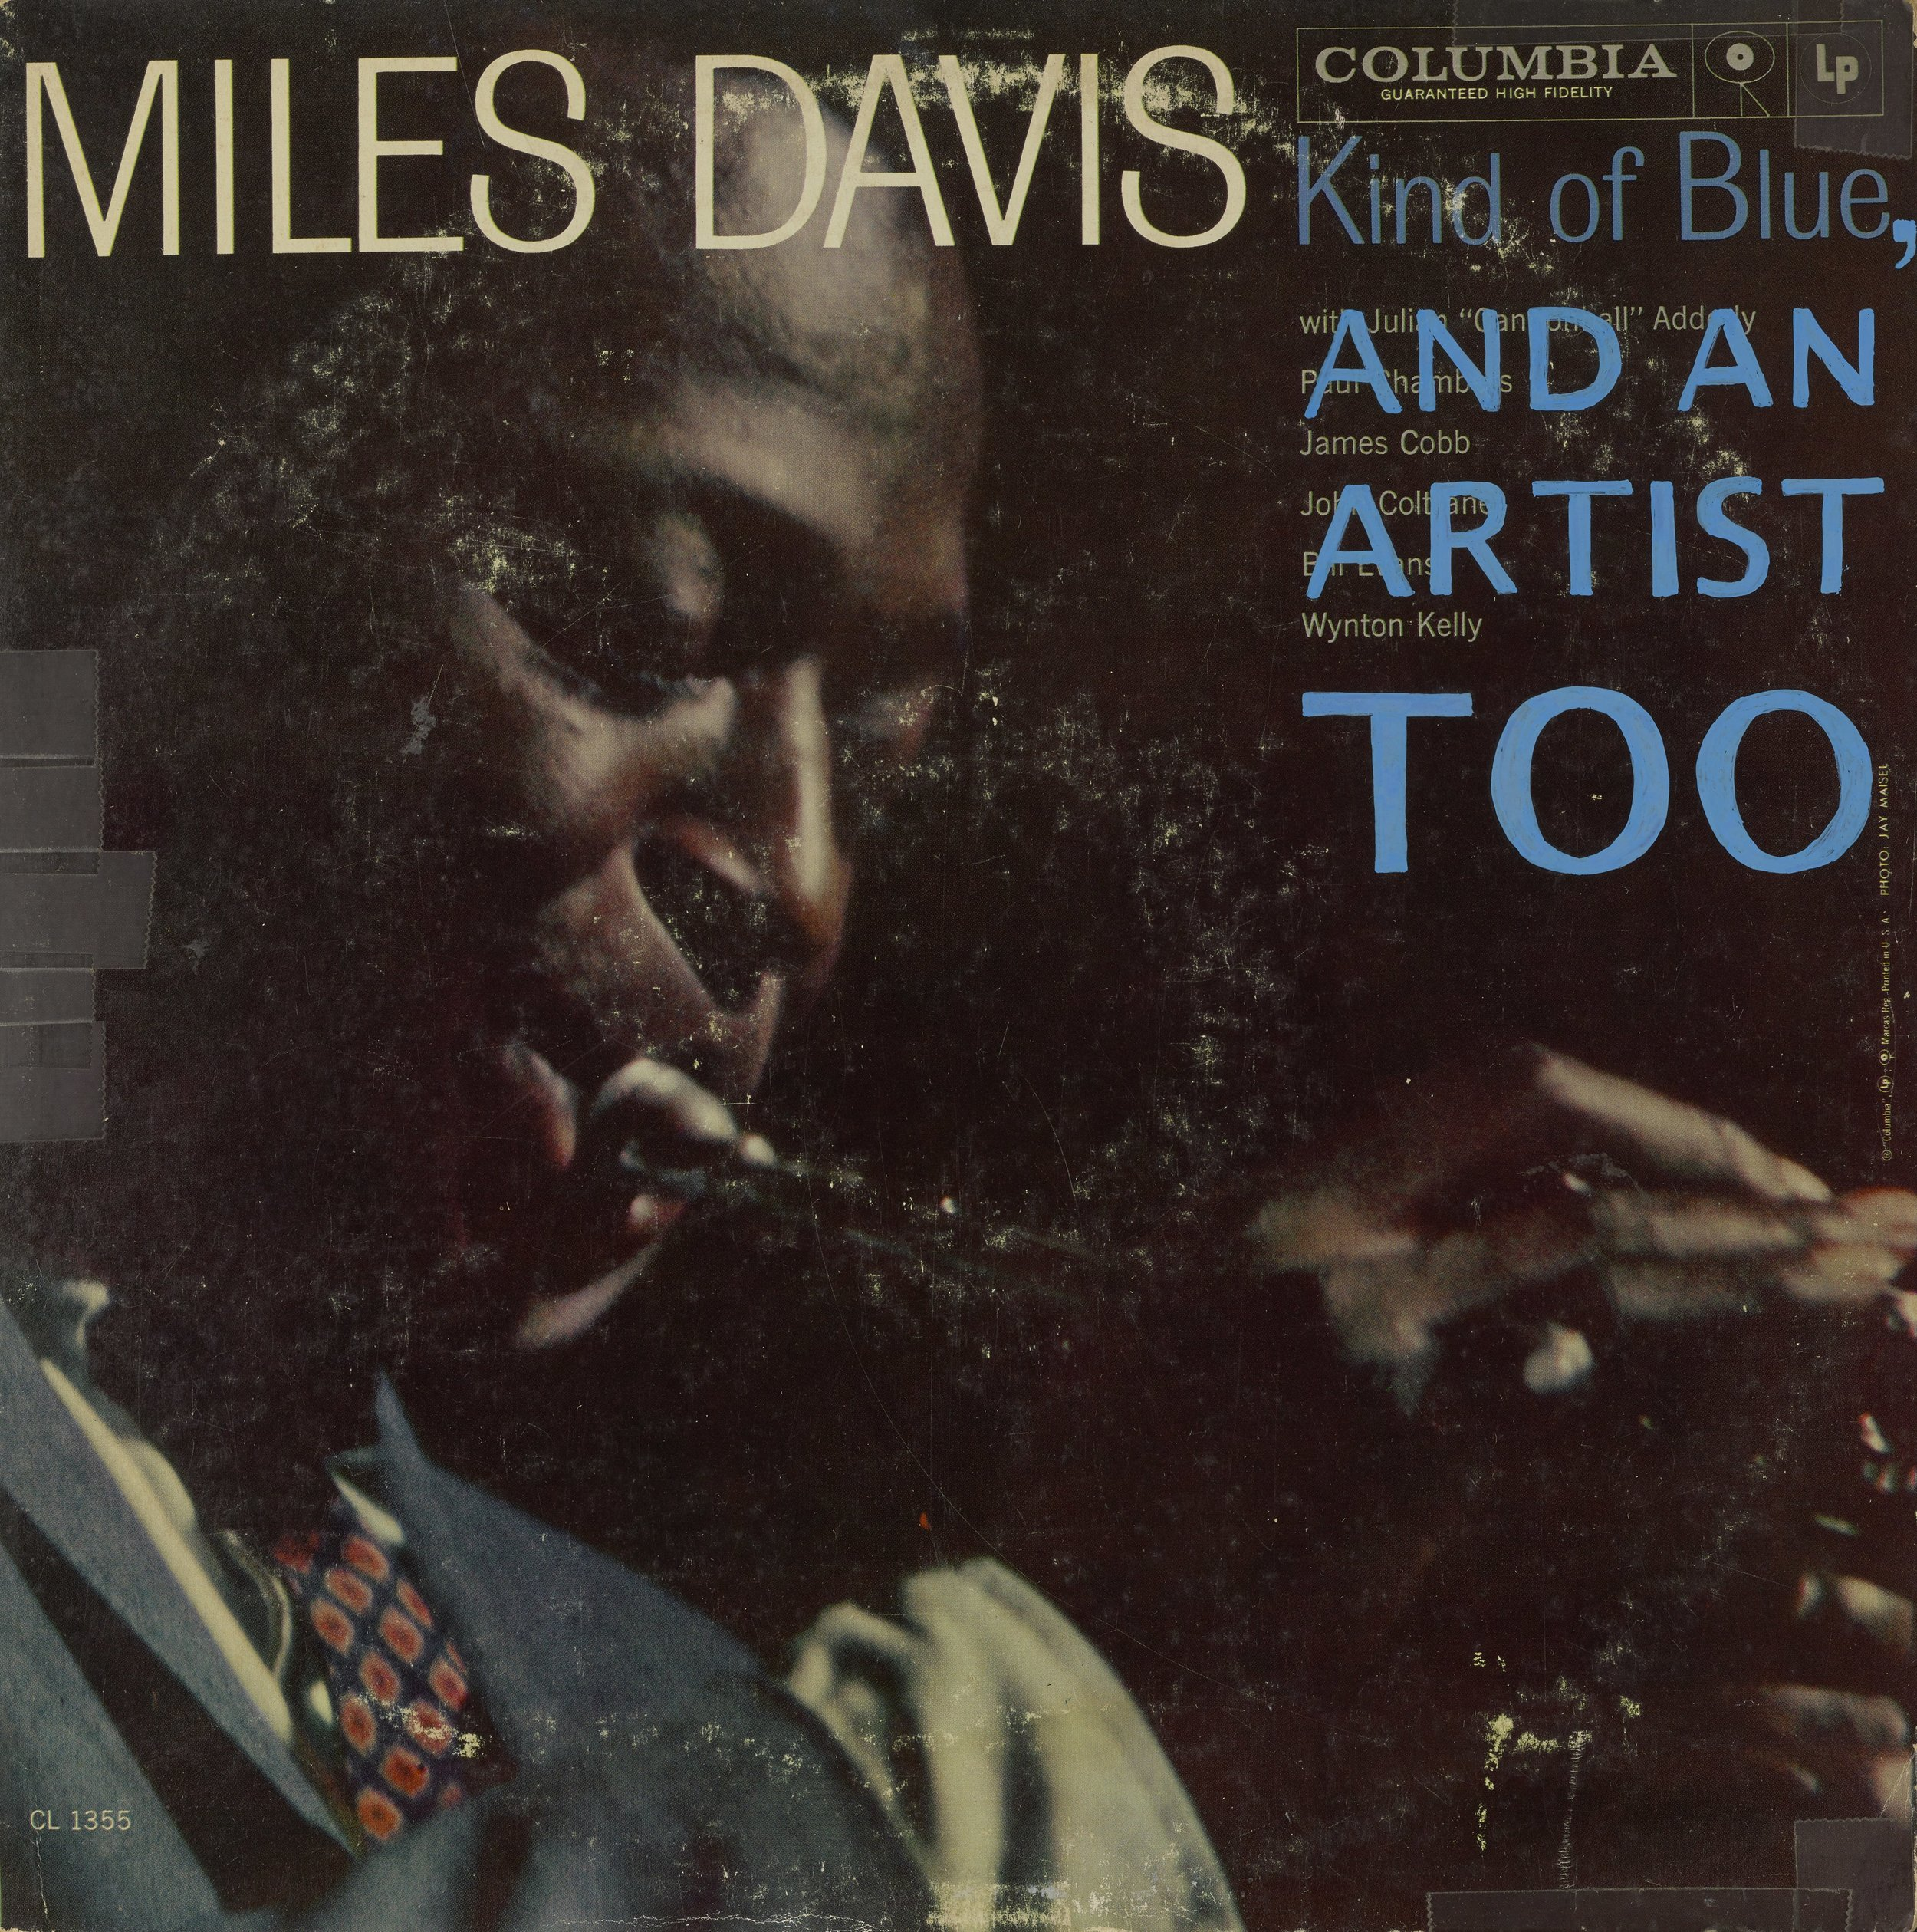 The Art of Miles Davis, 2016